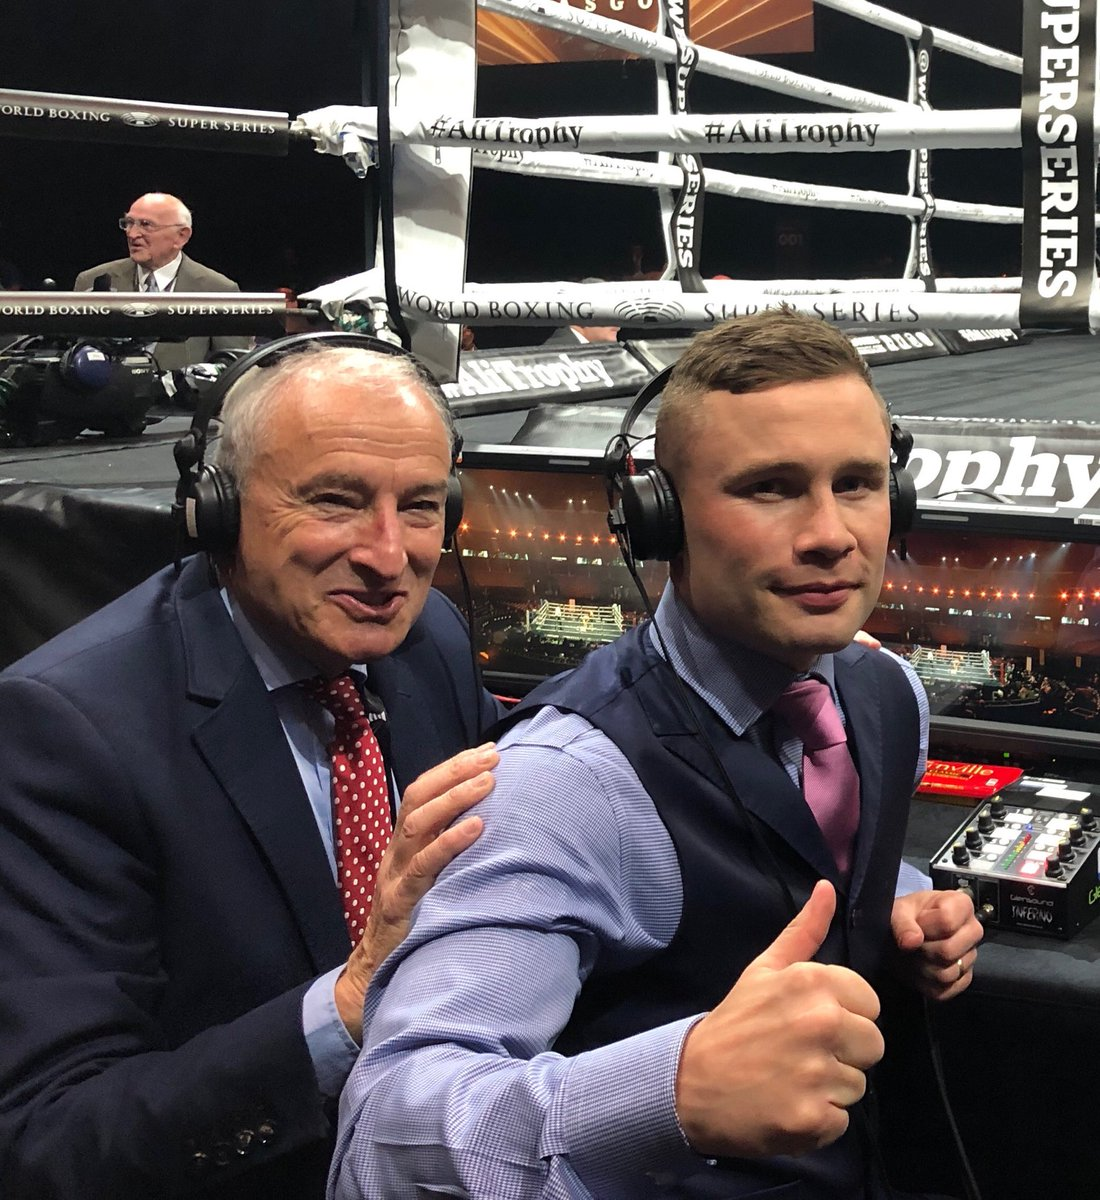 Absolute joy to pick up the boxing commentary mike again...magical night In Glasgow for #WBSuperSeries. Josh Taylor exciting quality..Naoya Inoue jaw dropping and great to work alongside the insightful ⁦@RealCFrampton⁩